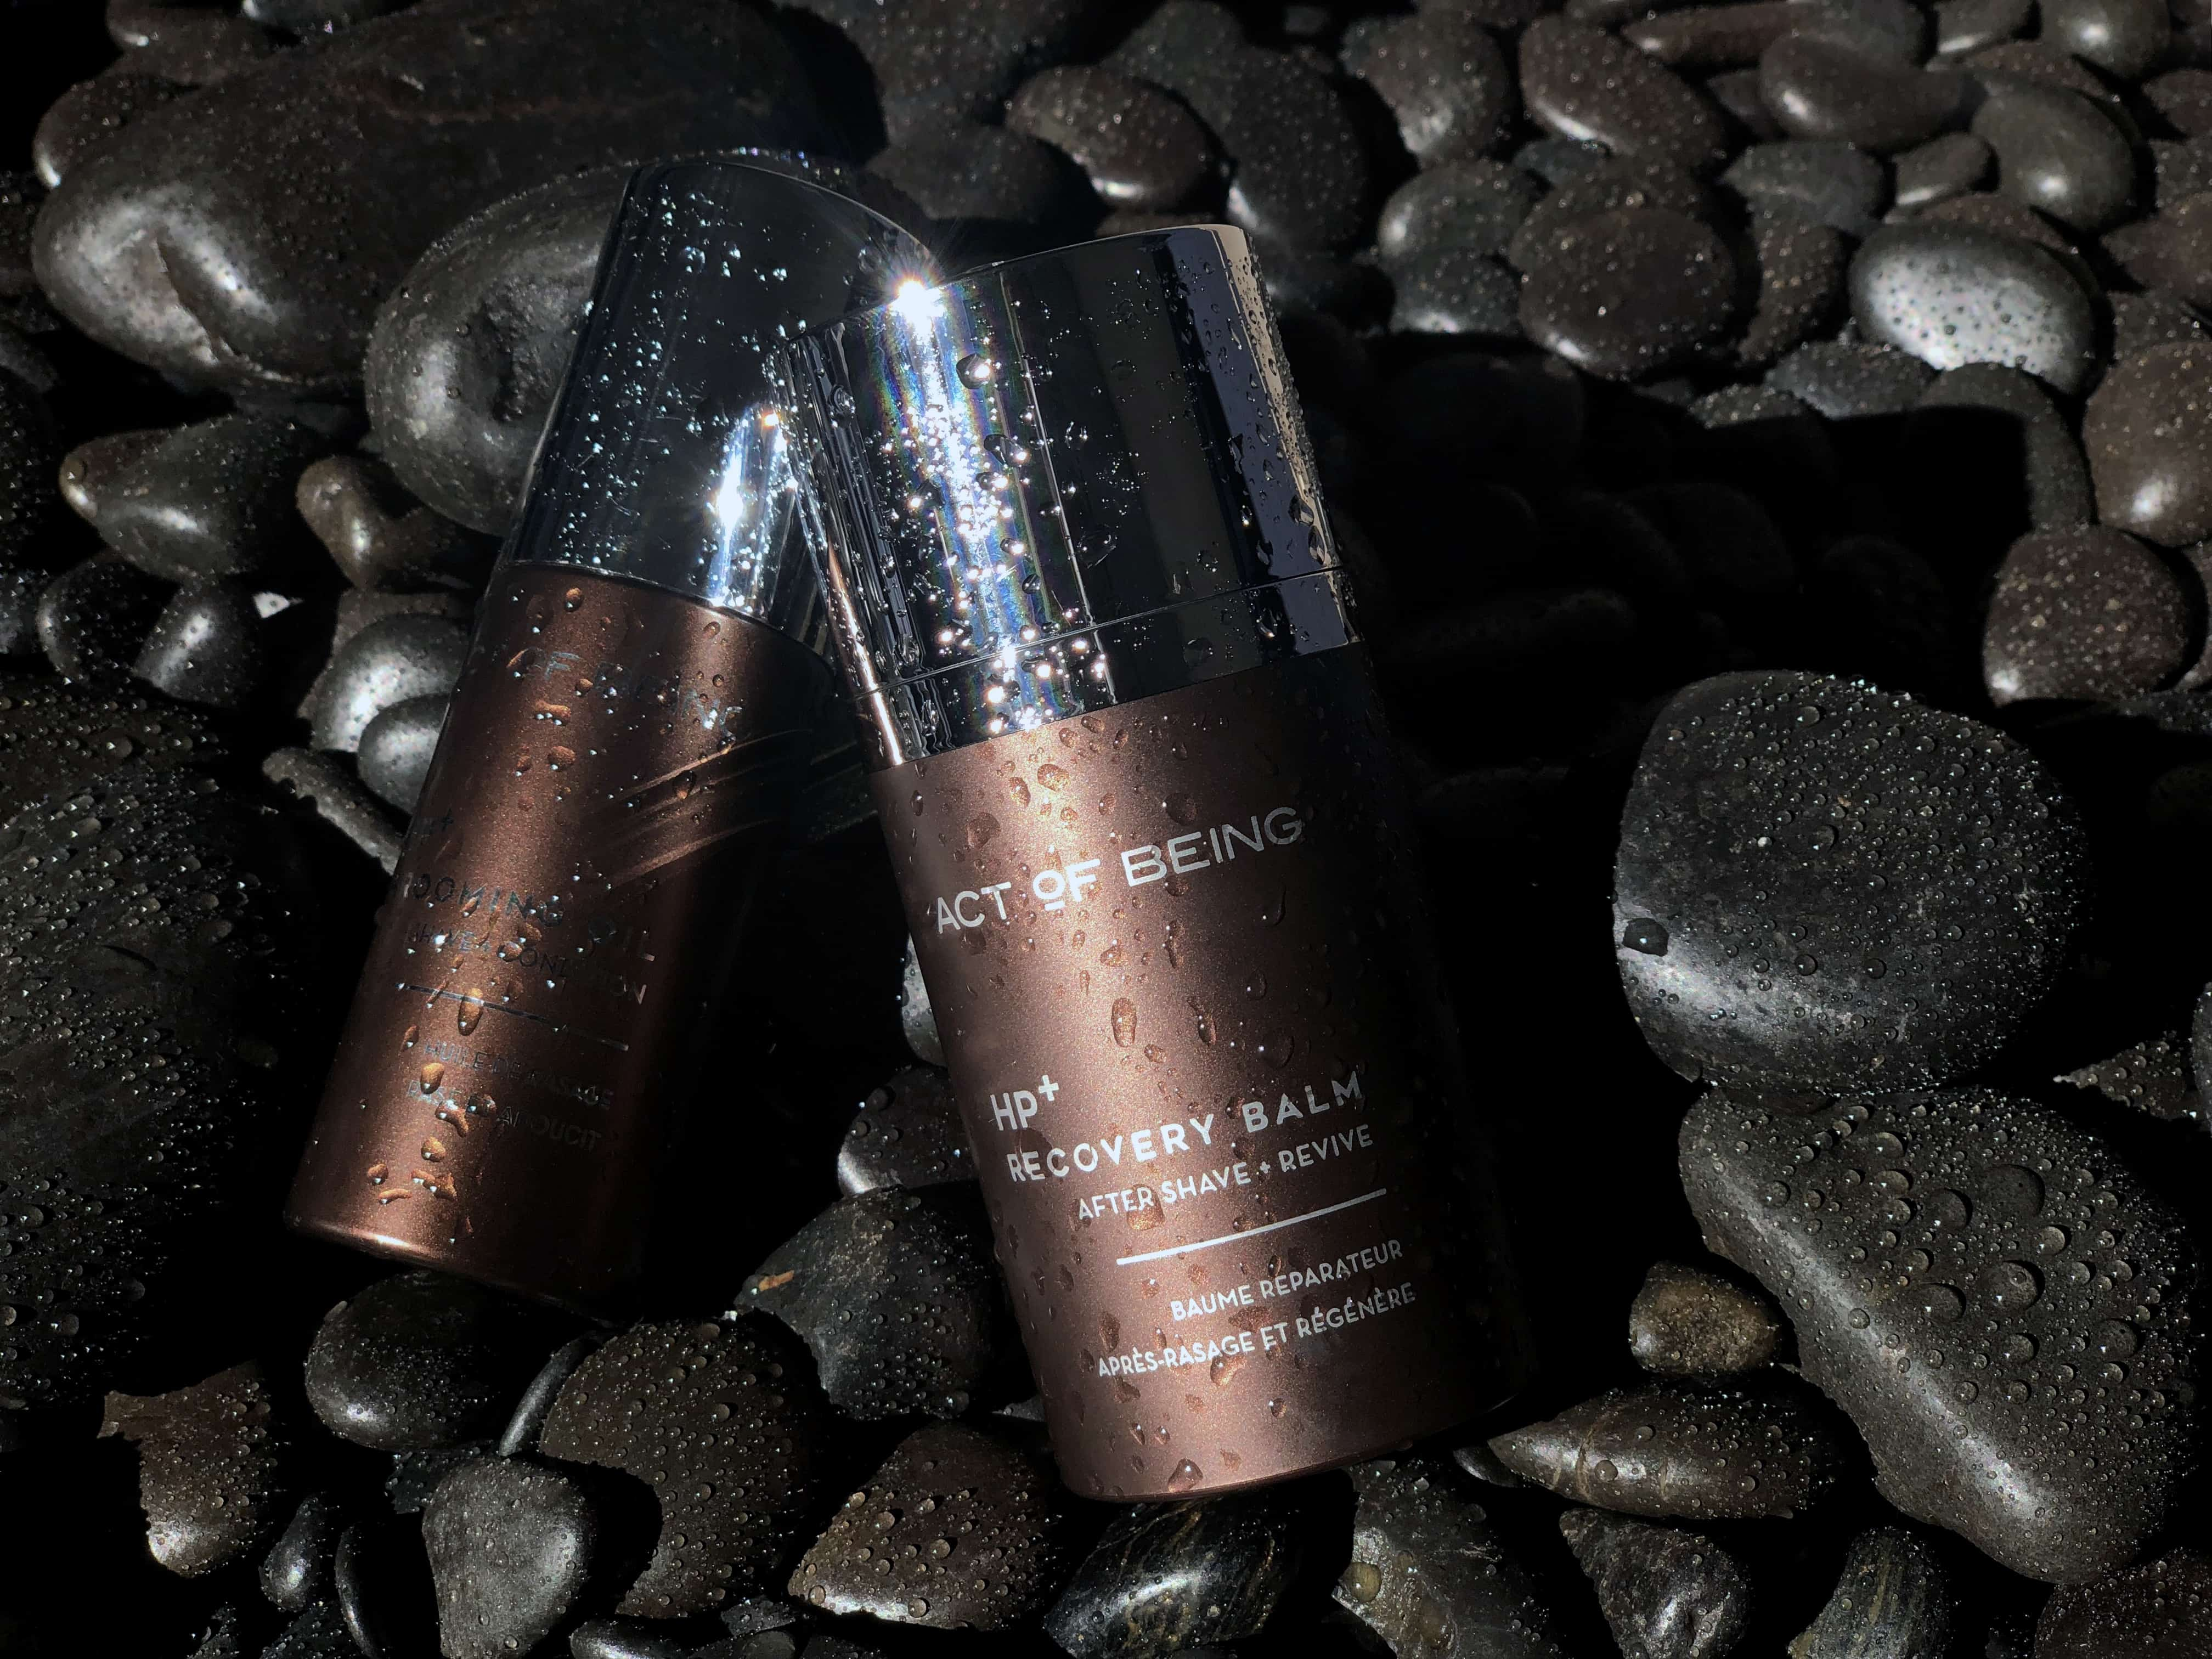 ACT OF BEING recovery balm